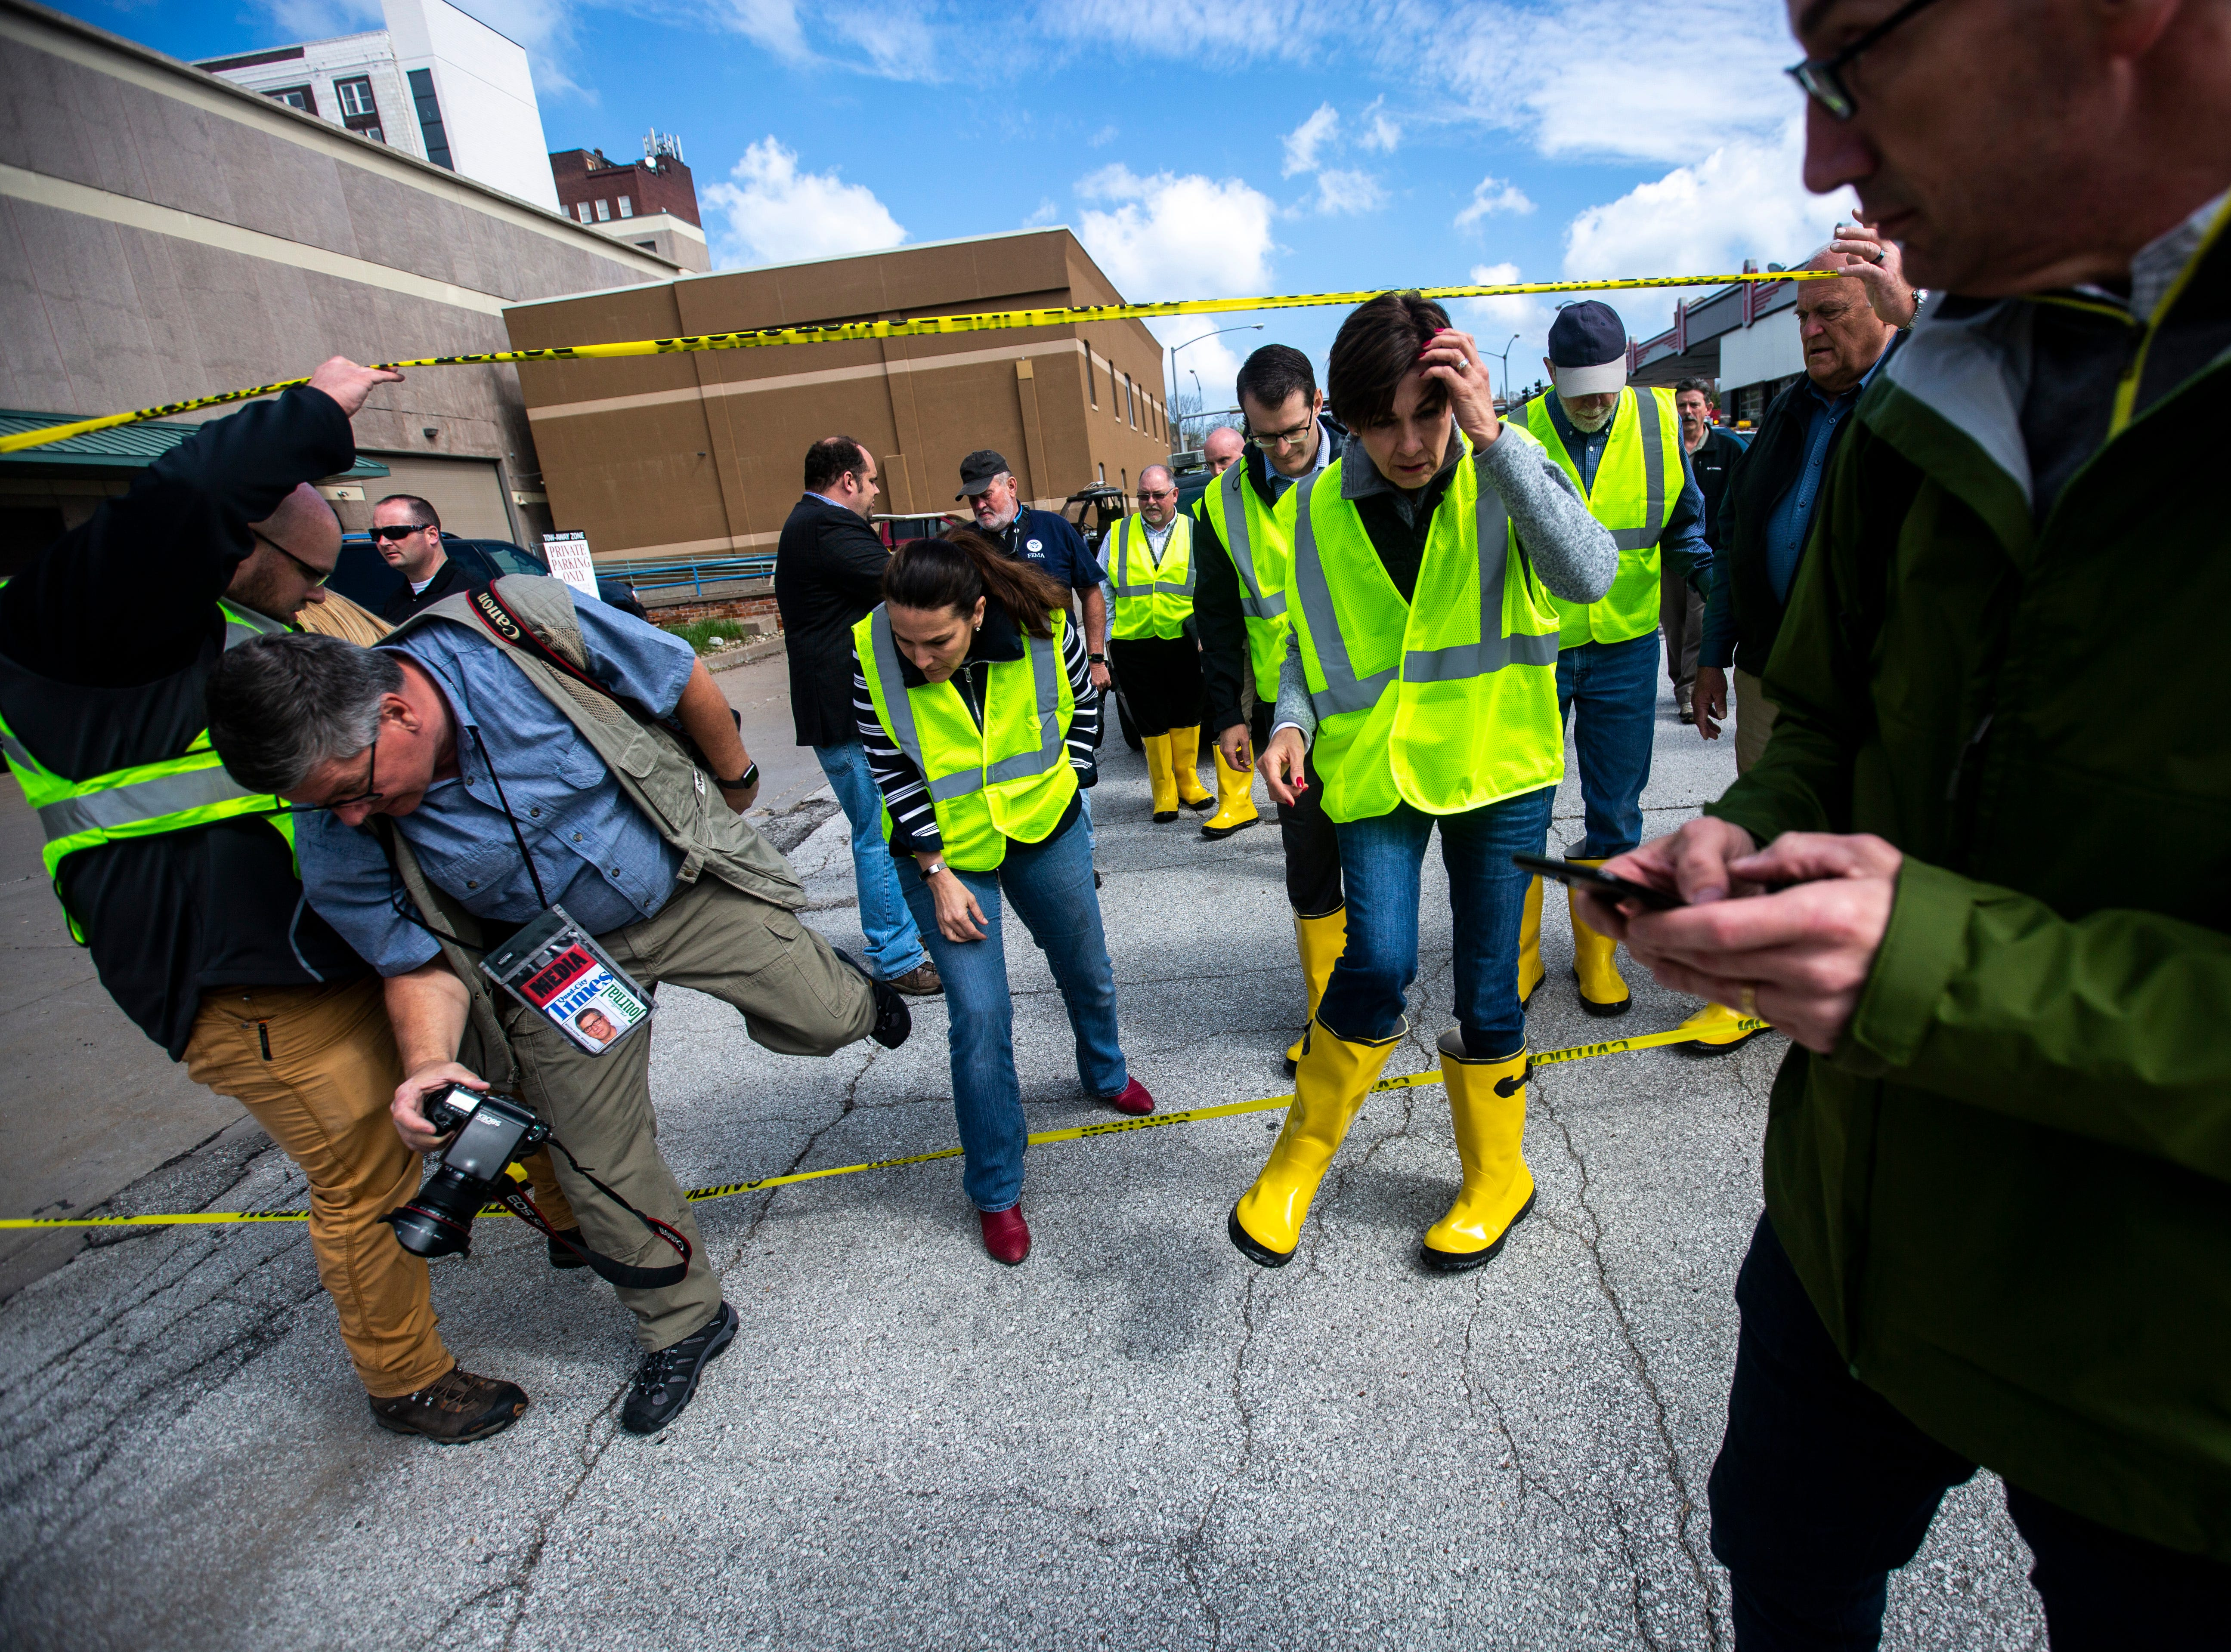 Iowa Gov. Kim Reynolds, steps under a yellow police tape line along Pershing Avenue while touring areas impacted by floodwater, with Lt. Gov. Adam Gregg and U.S. Rep. Dave Loebsack, D-Iowa, Friday, May 3, 2019, in downtown Davenport, Iowa.